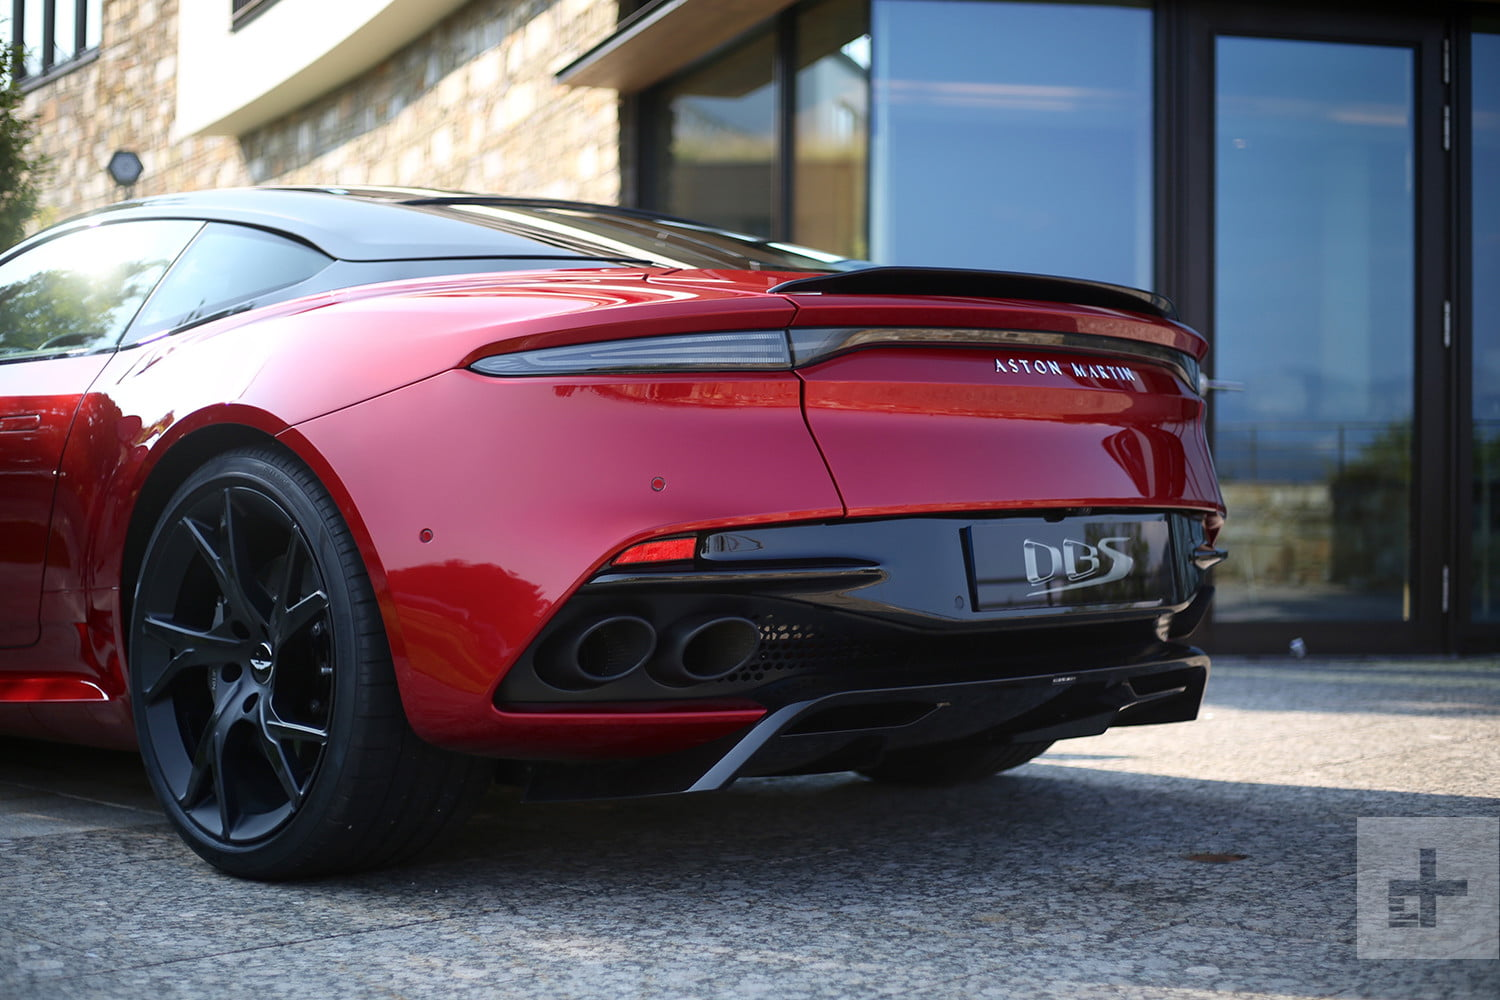 2019 Aston Martin Dbs Superleggera First Drive Review Digital Trends